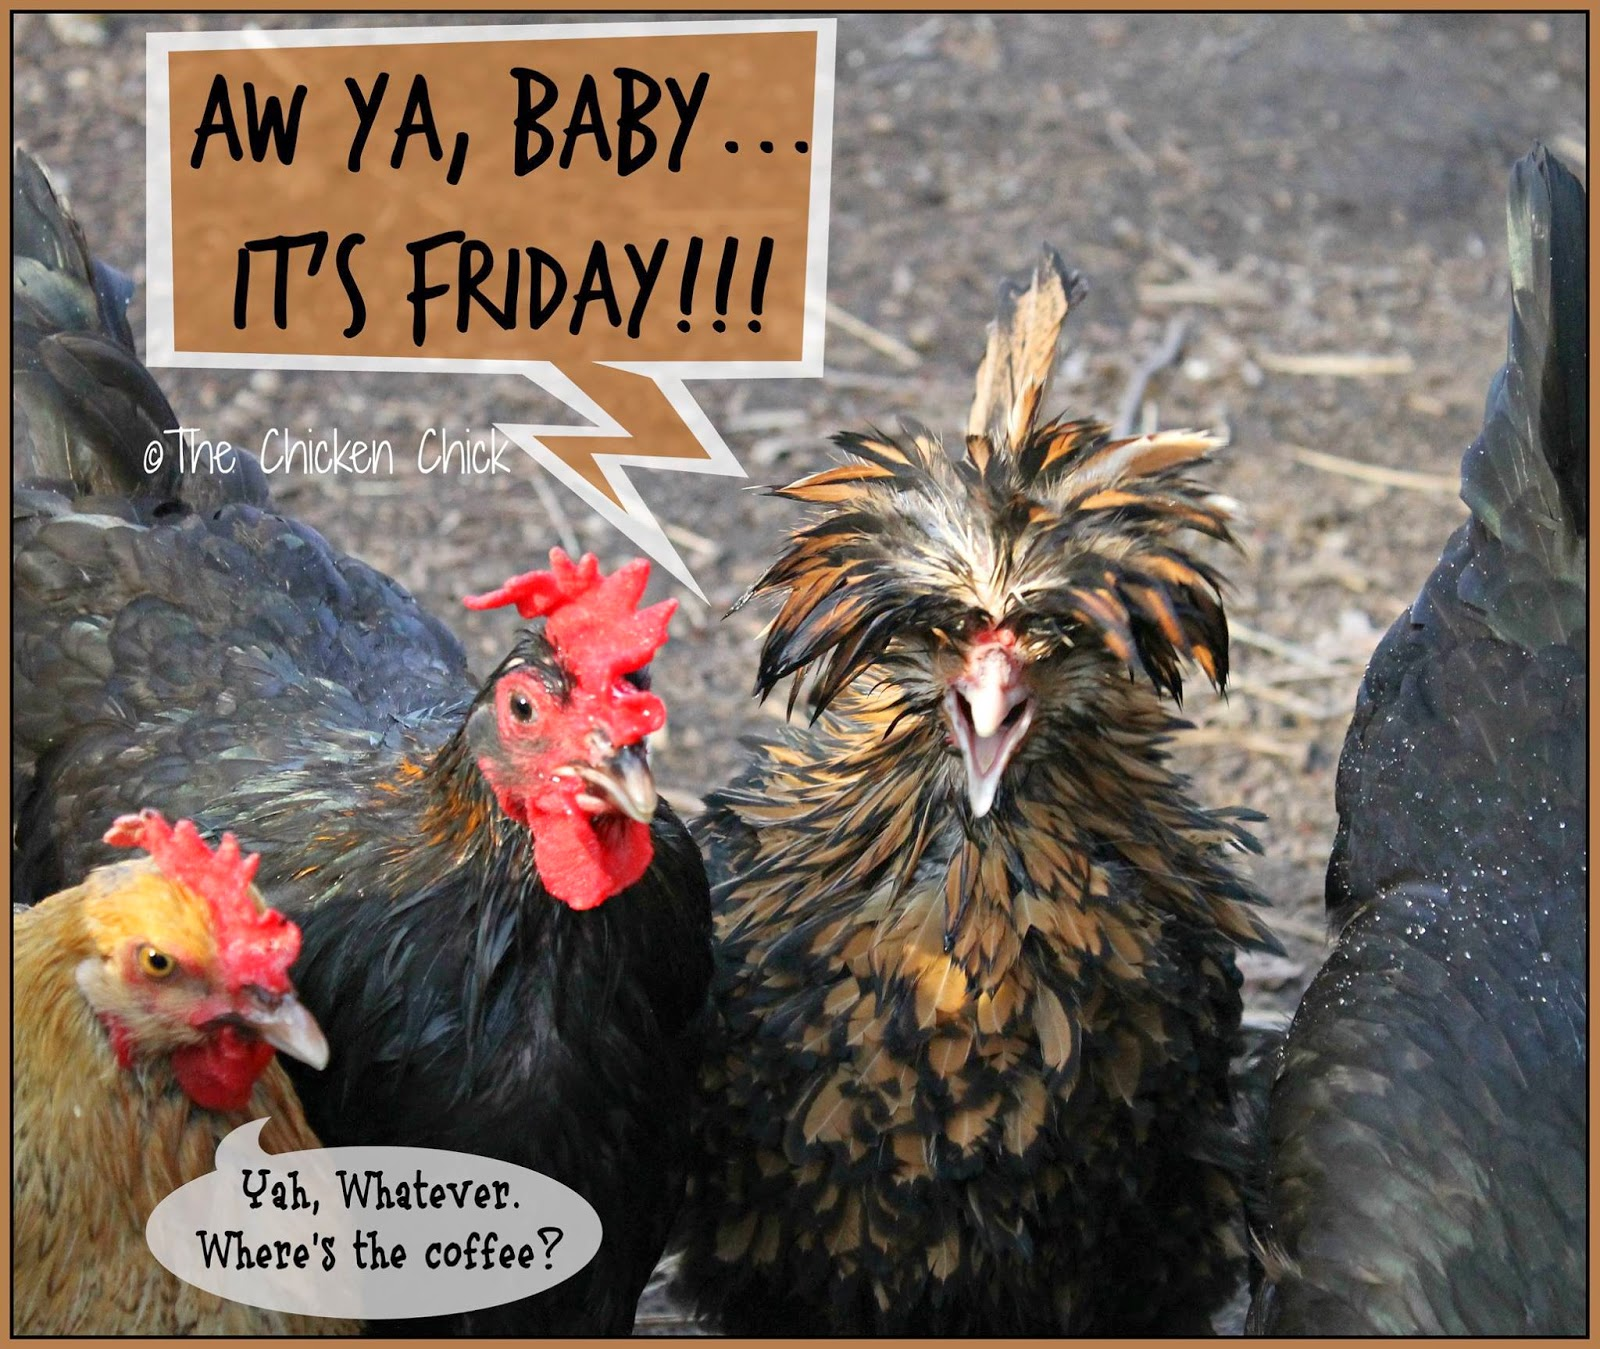 AW YA, BABY...IT'S FRIDAY!!!